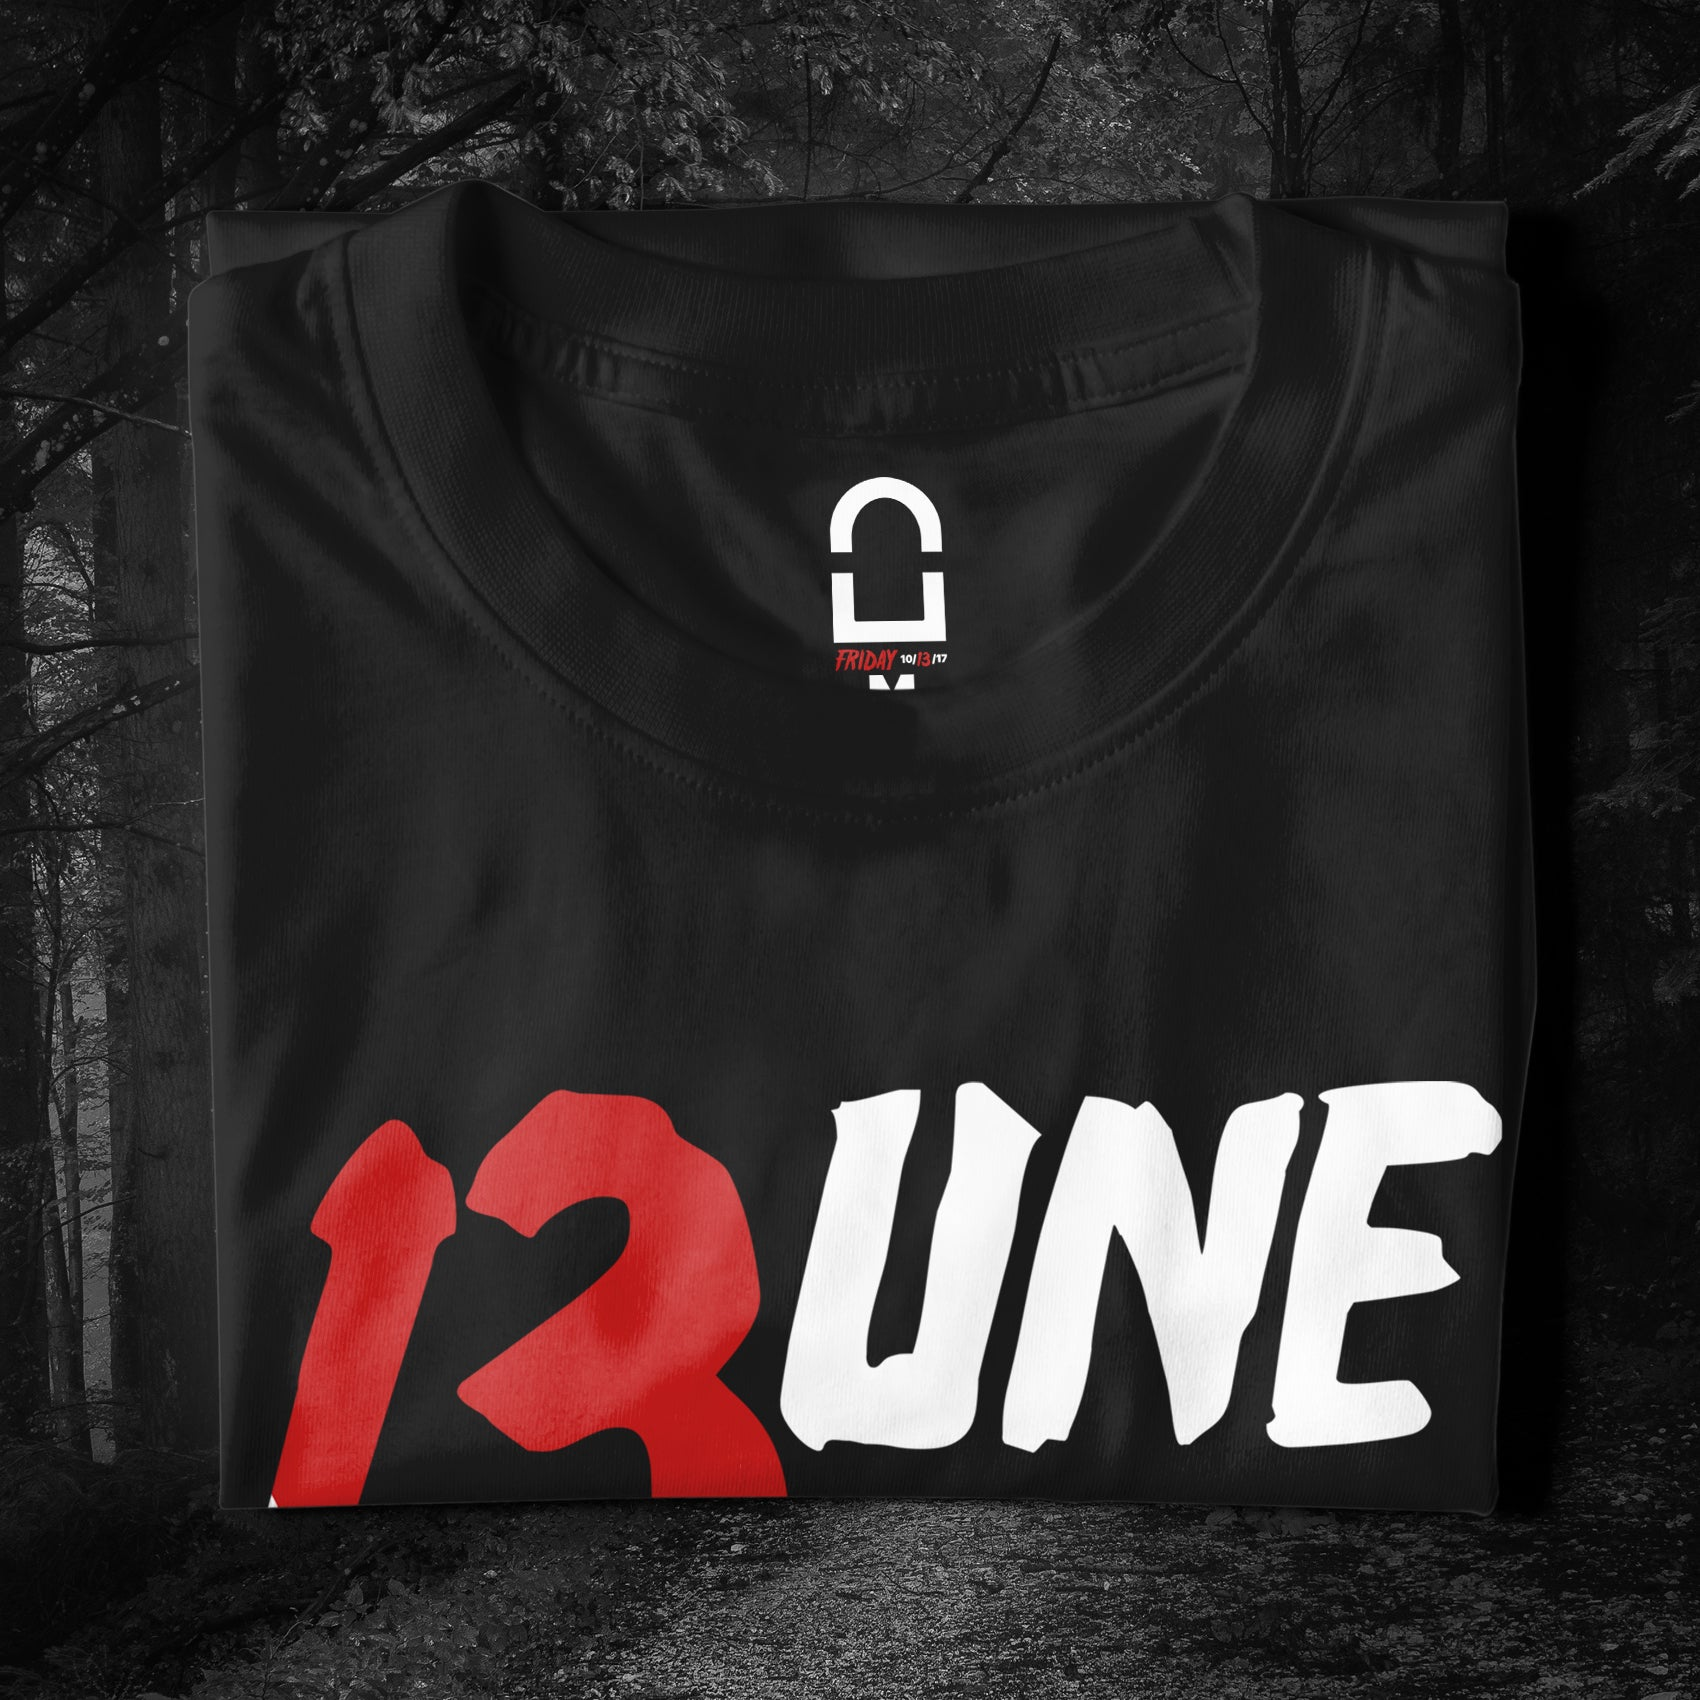 Friday the 13th Bune Shirt